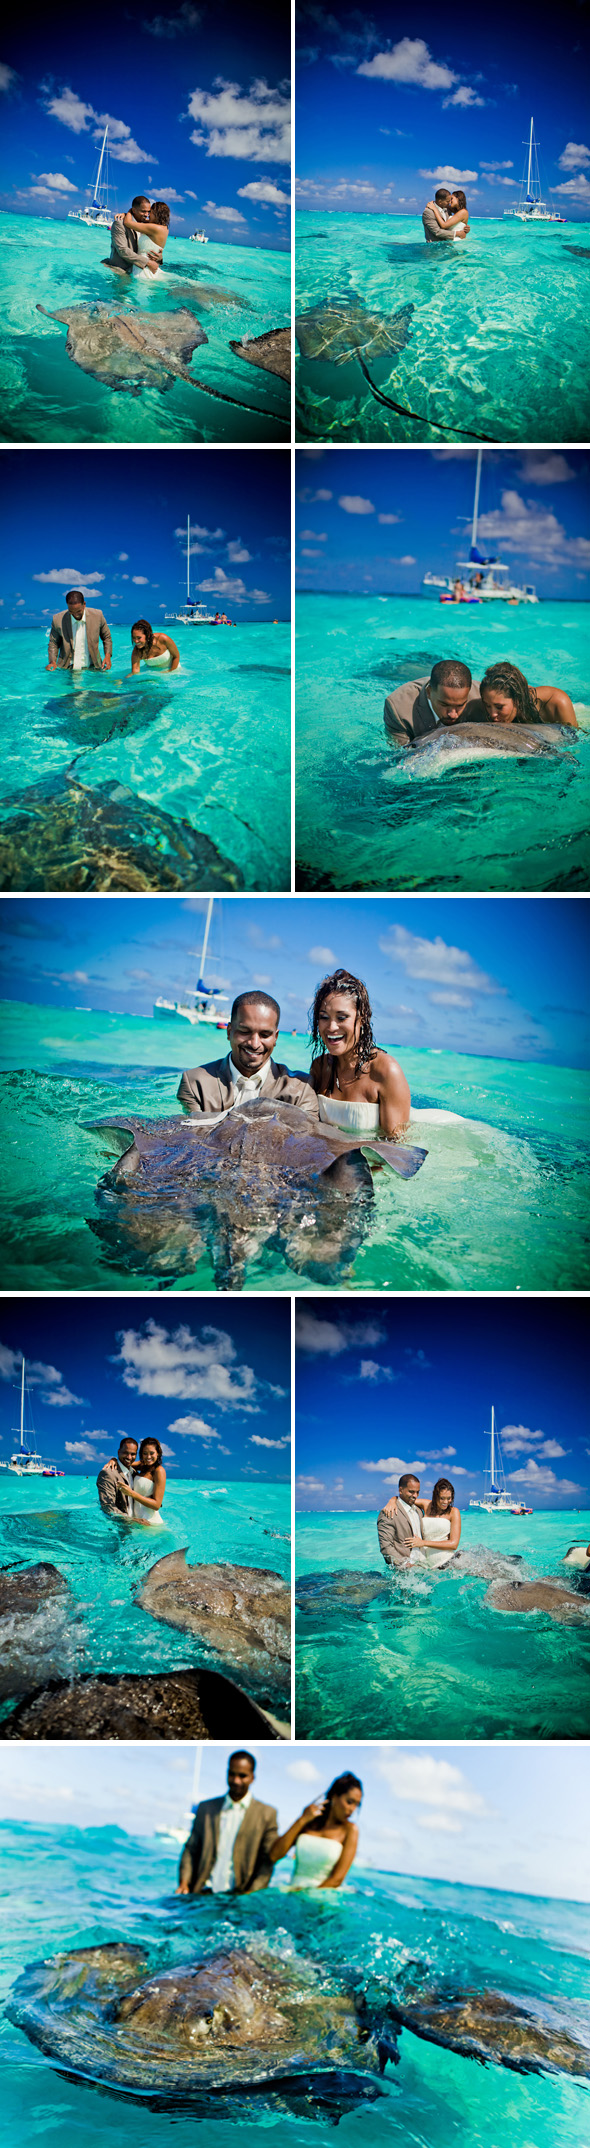 stingray city trash the dress Stingray City, Grand Cayman Trash the Dress